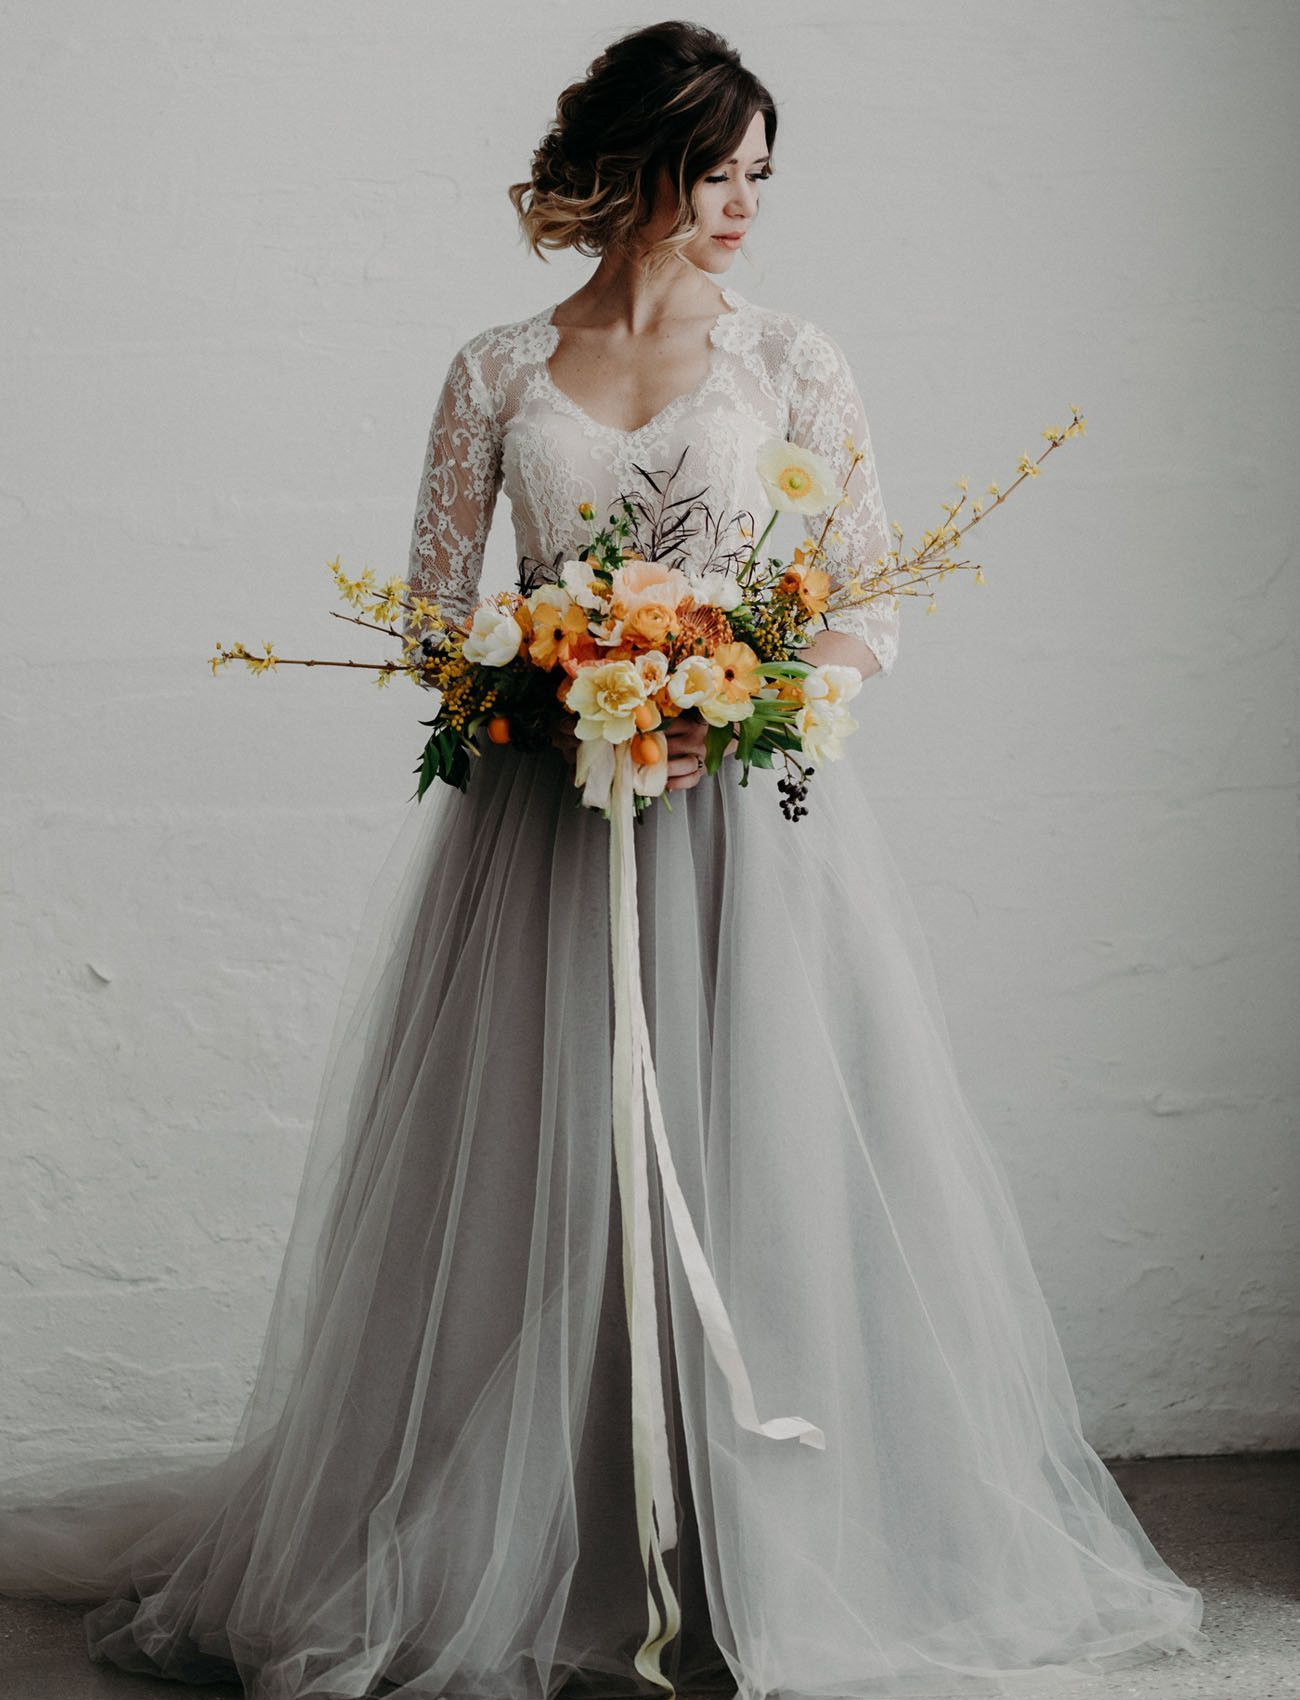 Short lace wedding dress with train  Grey Short Train Full Length Wedding Skirt  Wedding Decoration